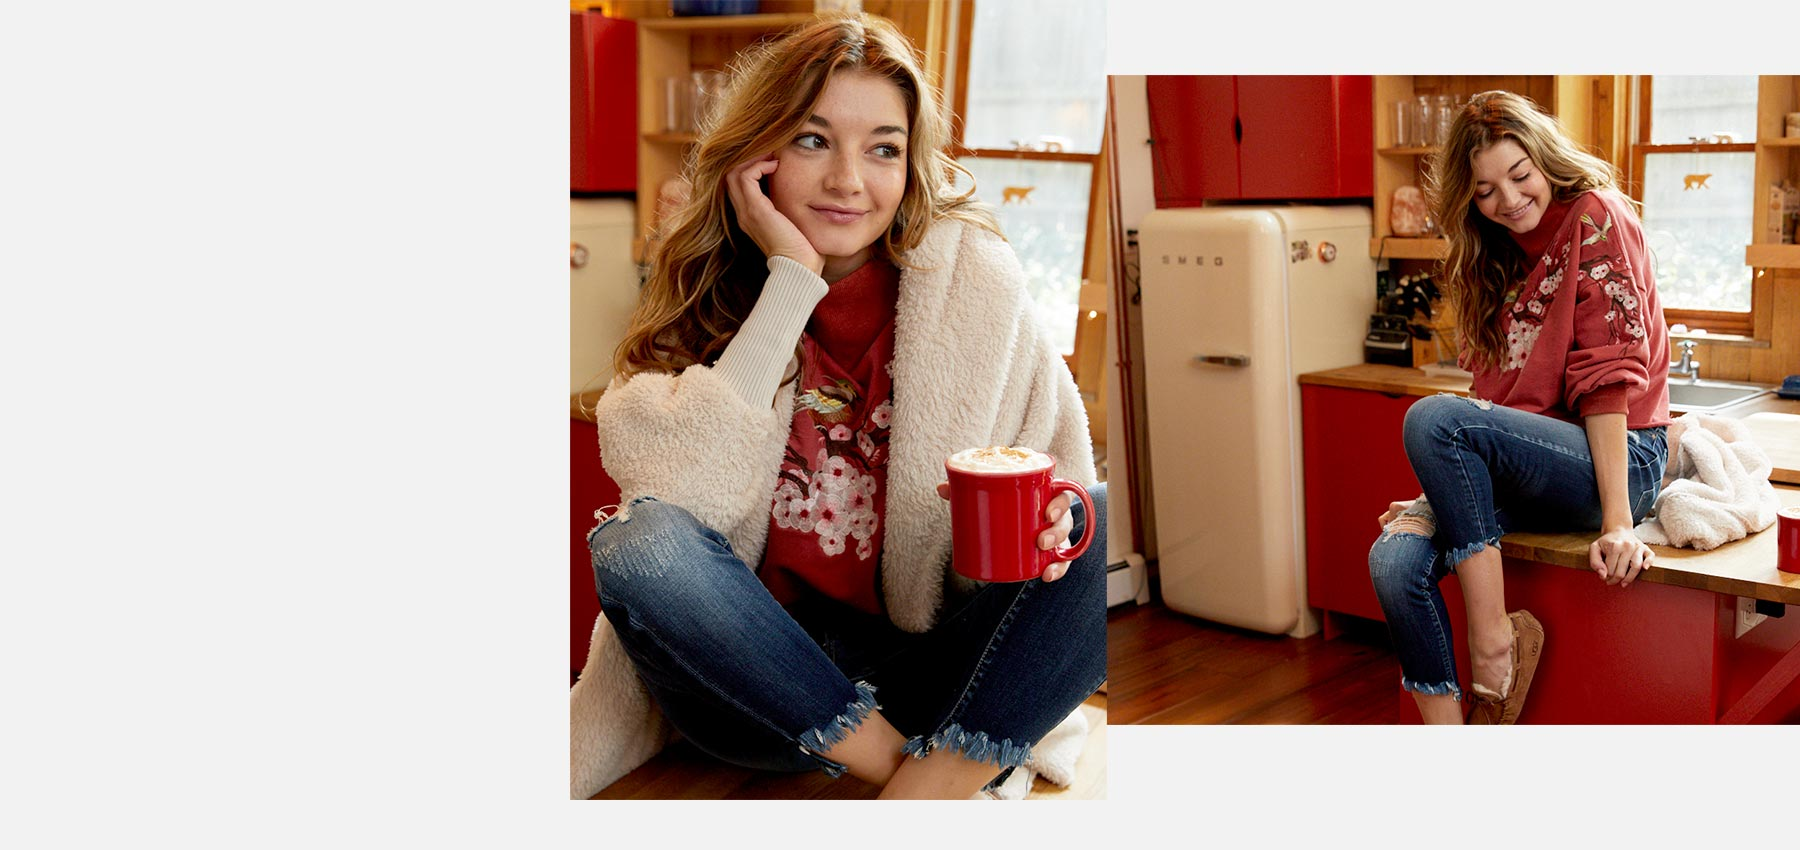 Girl drinking hot chocolate in the kitchen, while wearing cozy new arrivals from Buckle.